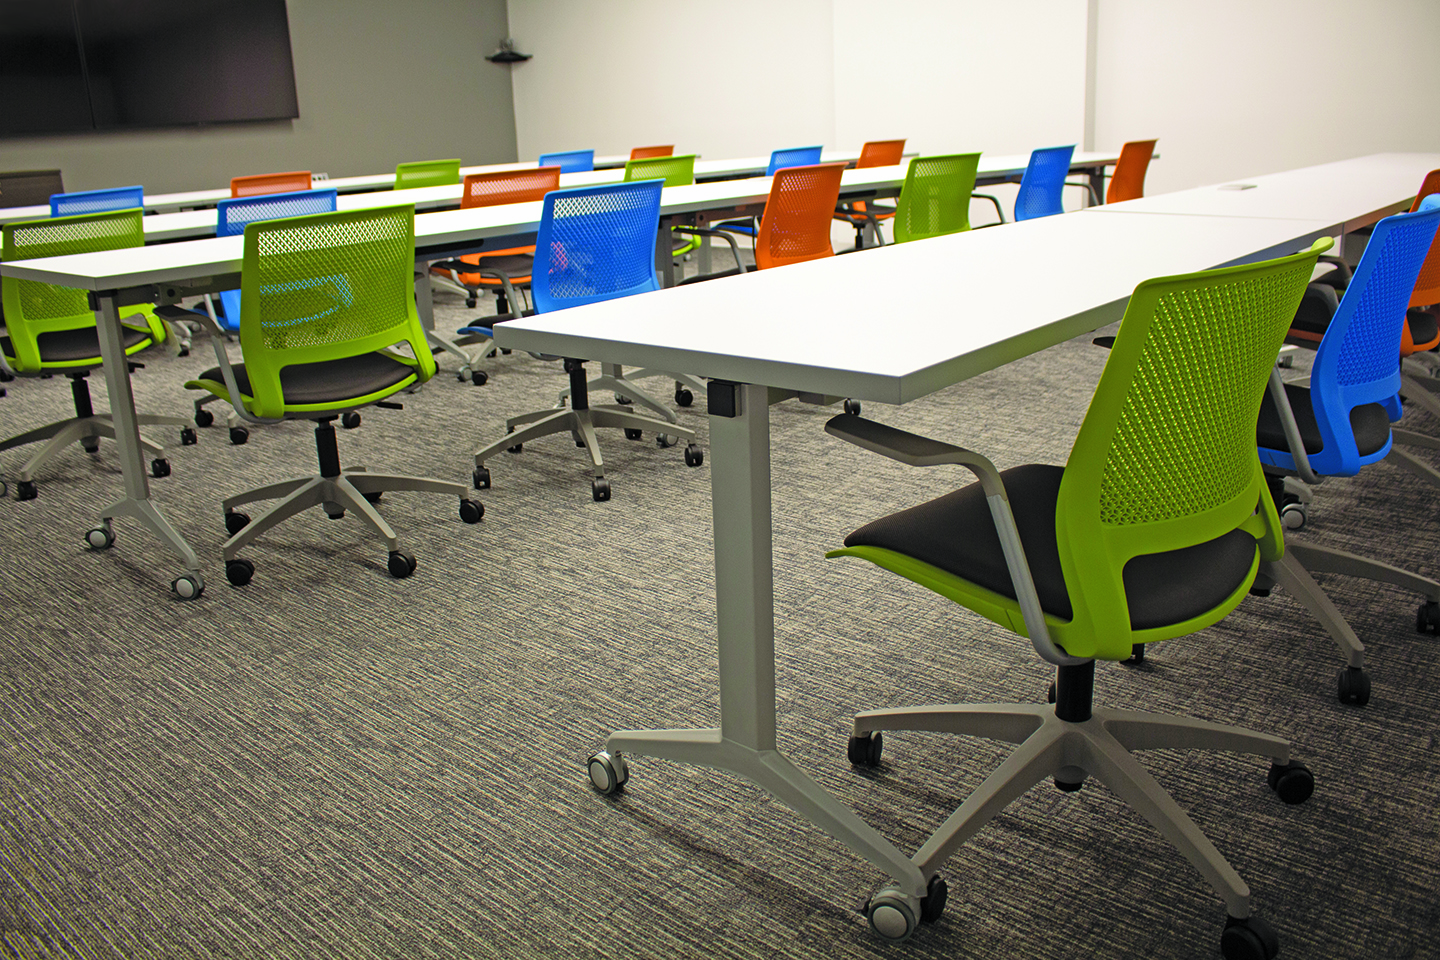 3 reasons why a designated training room is necessary ethosource - Why you need an ergonomic chair for your home office ...